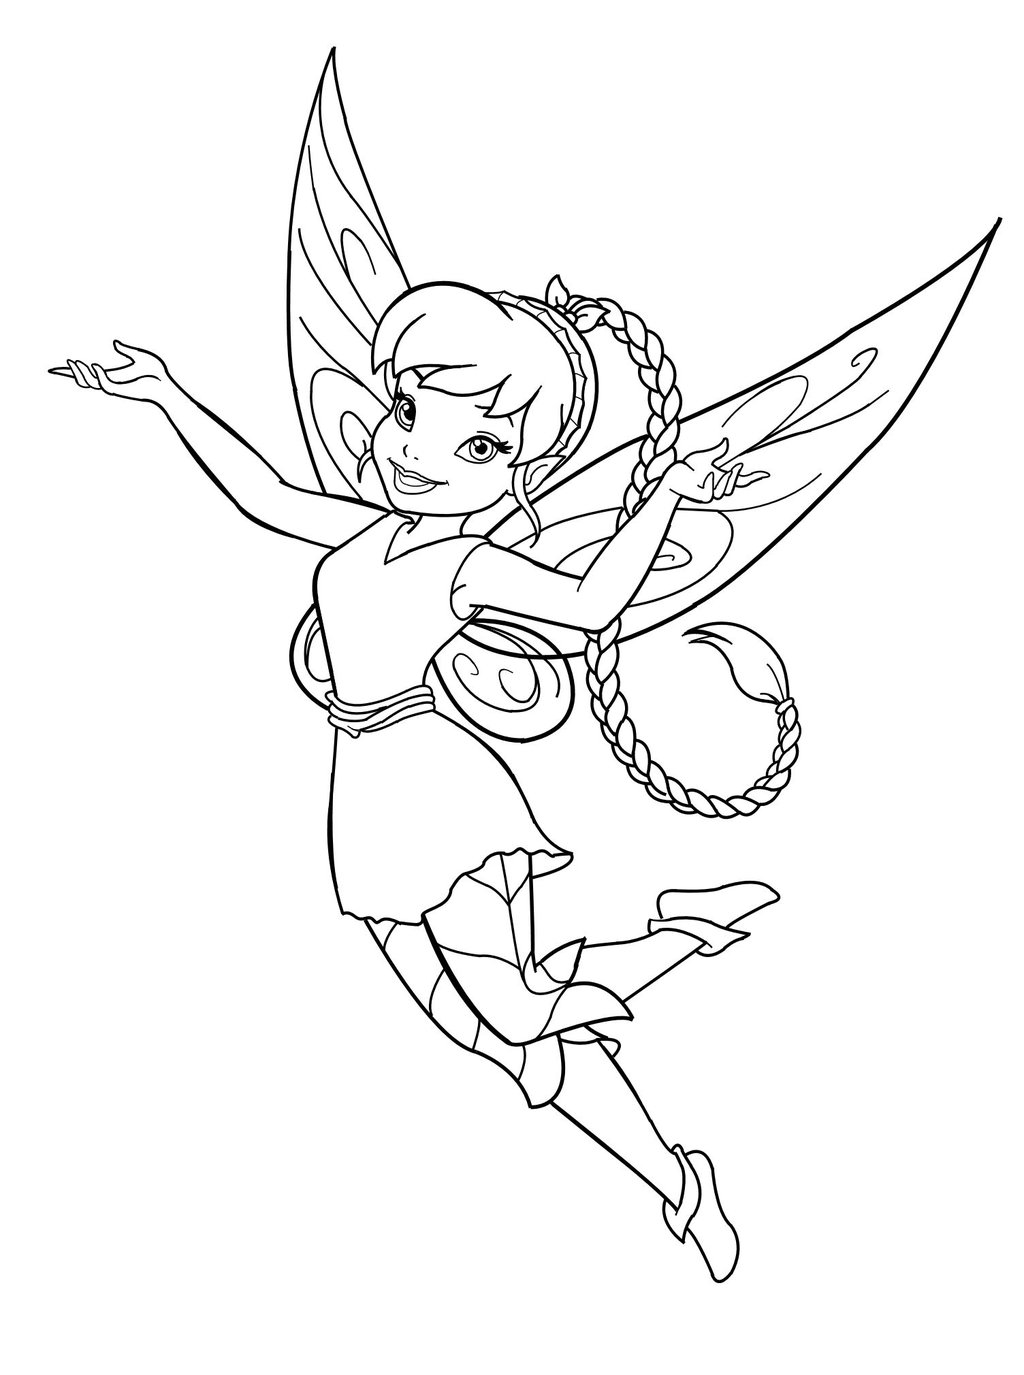 1024x1375 Free Printable Disney Fairies Coloring Pages For Kids